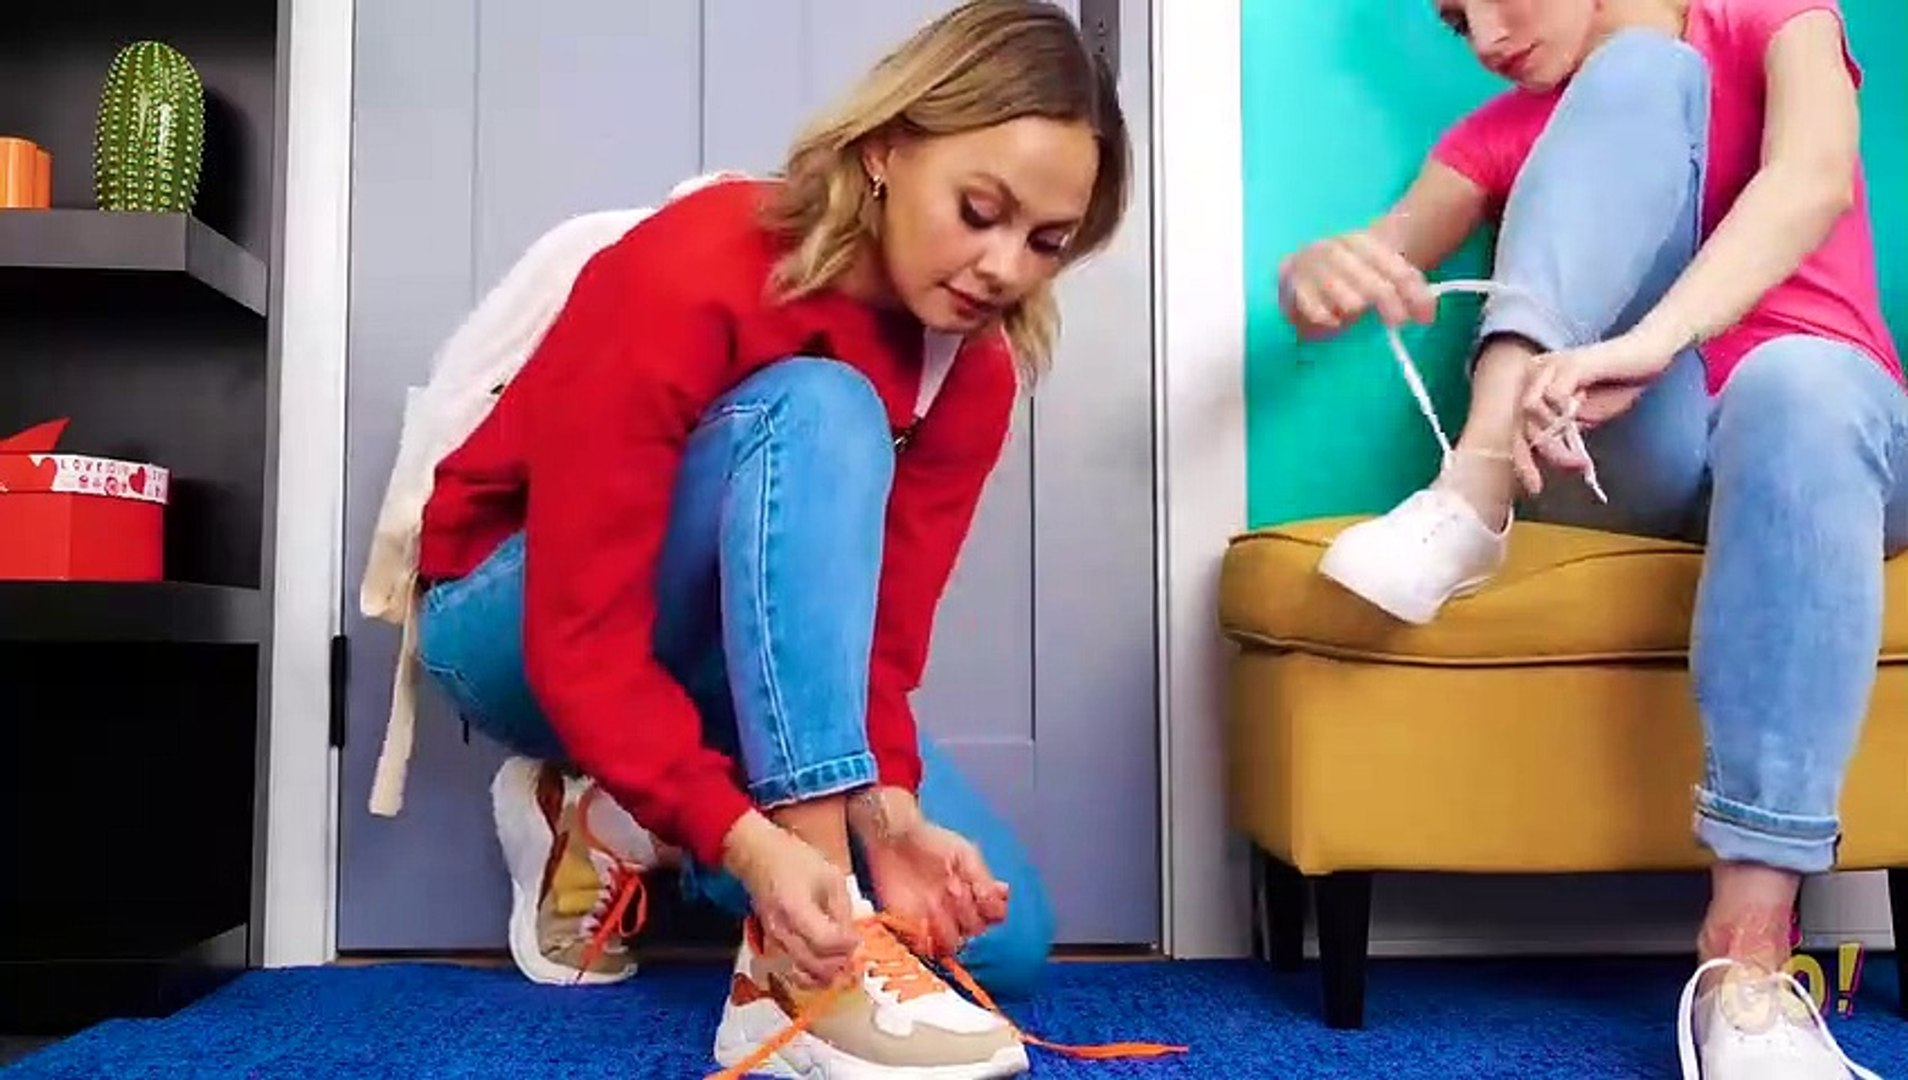 FASHION HACKS AND CLOTHES DIY TRICKS -- Smart Tips For Girls by 123 GO!